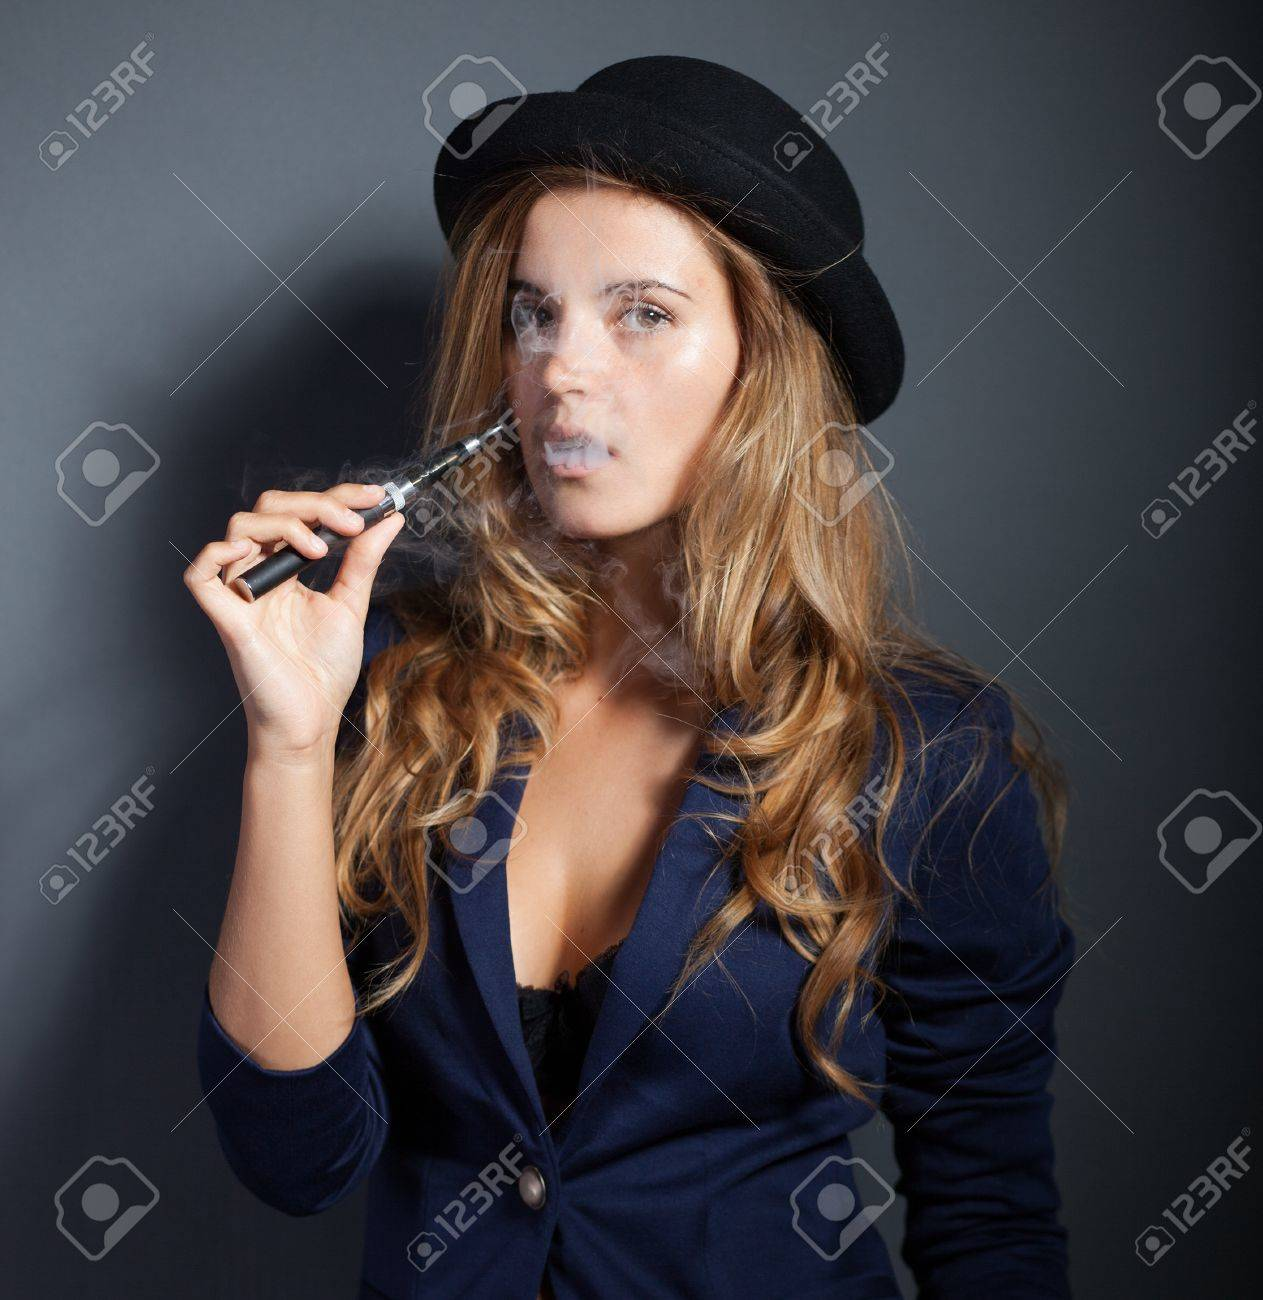 The most expensive electronic cigarettes